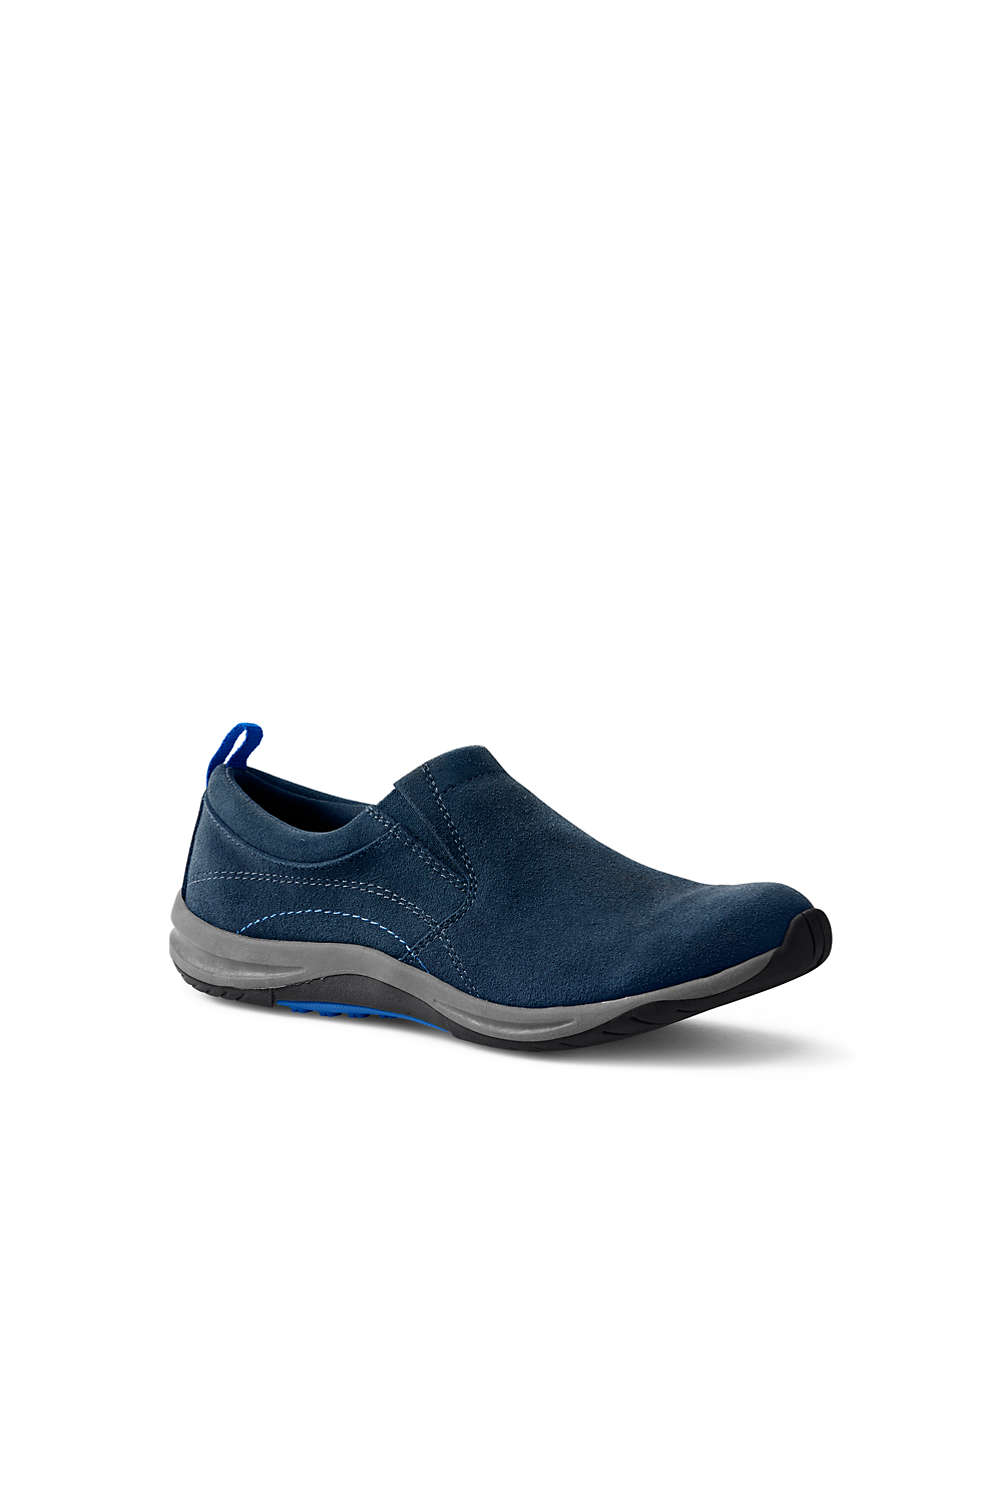 7e292107dd76 Women s Comfort Slip-on Shoes from Lands  End